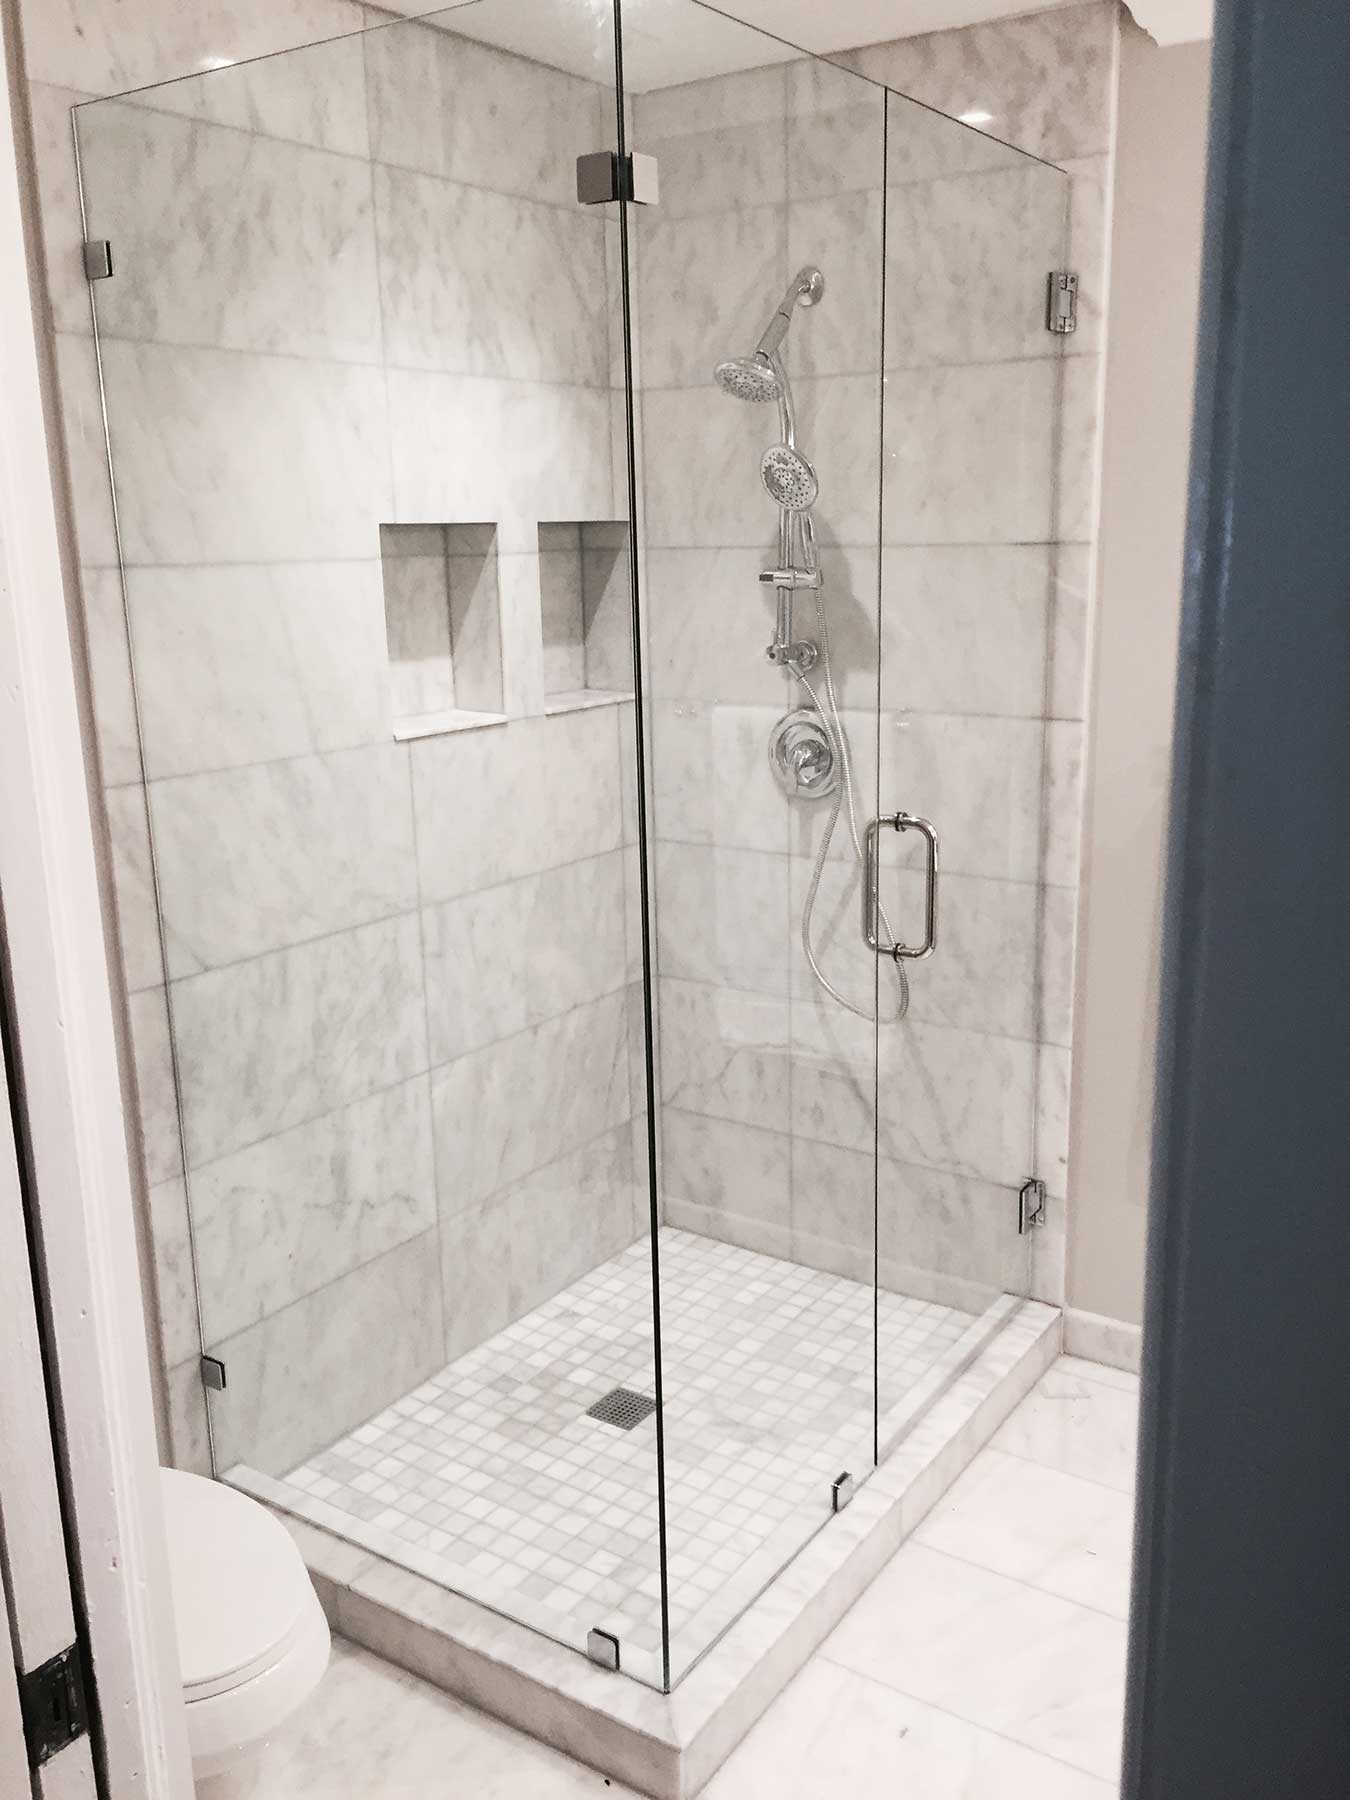 Discount glass shower doors call today for 10 off for Cheap glass doors